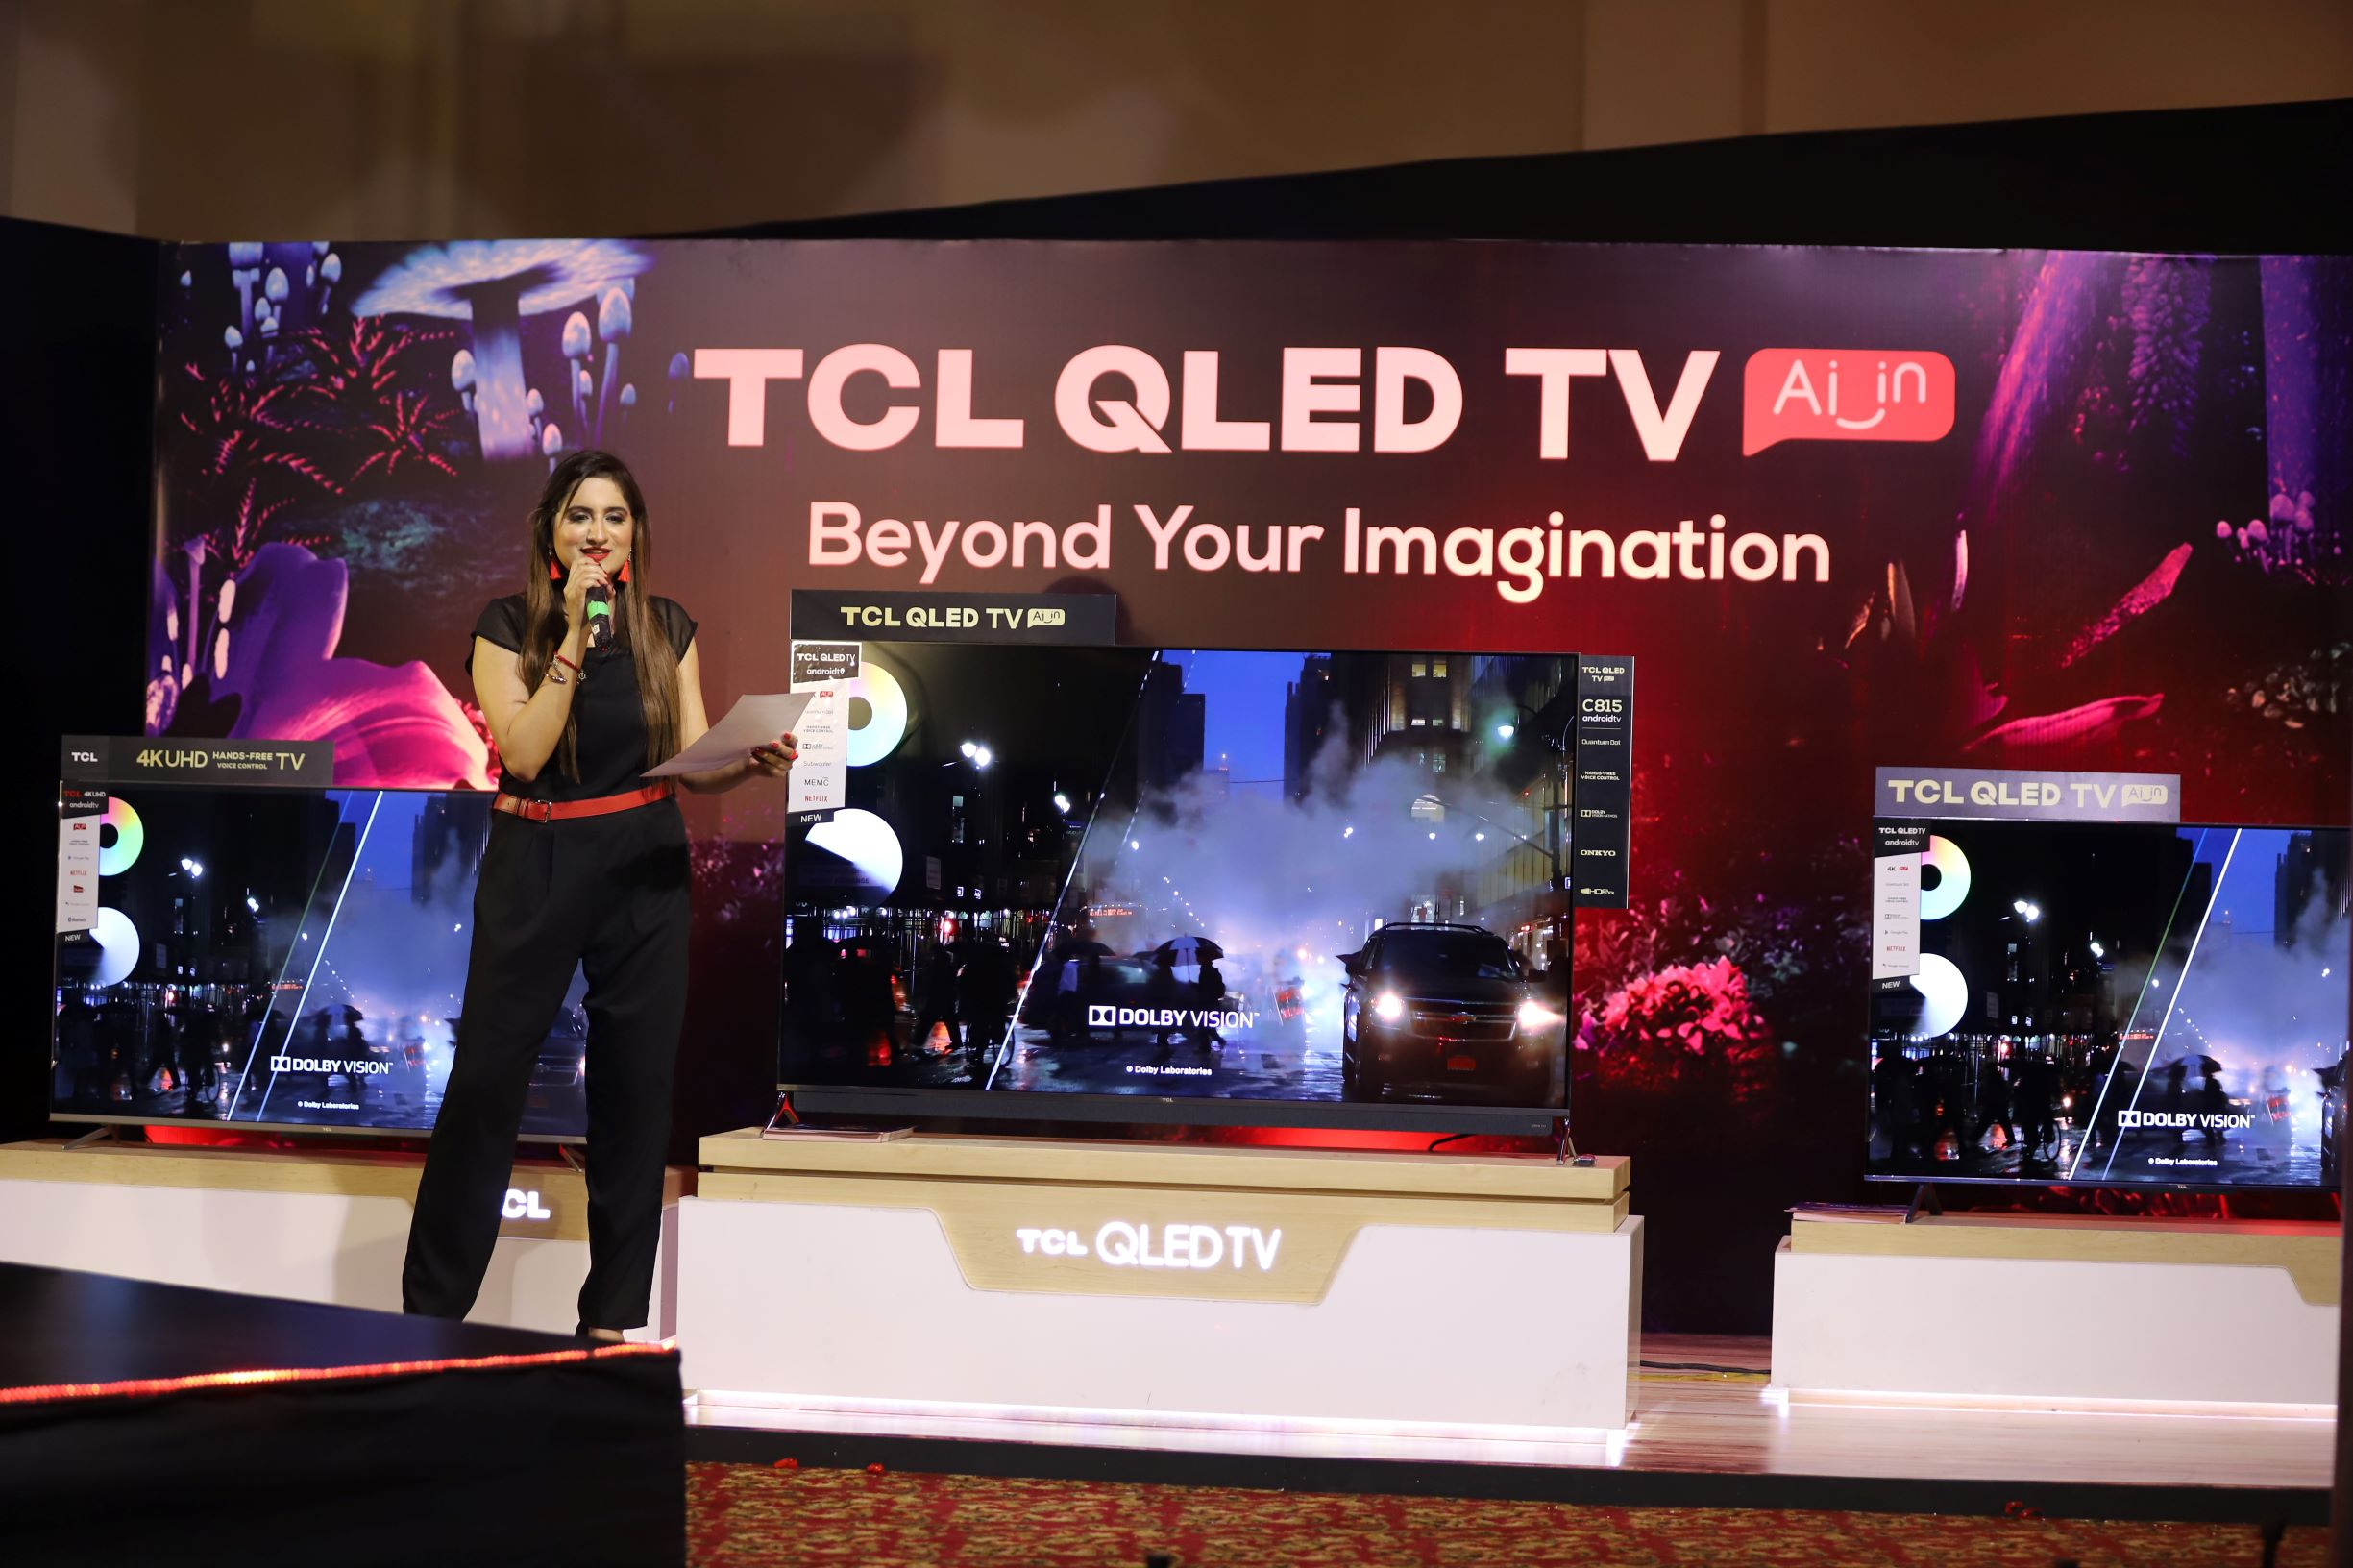 TCL Pakistan Debuts an Expanded Range of QLED TVs Featuring Quantum Dot120hz Display and Hands-Free Voice Control